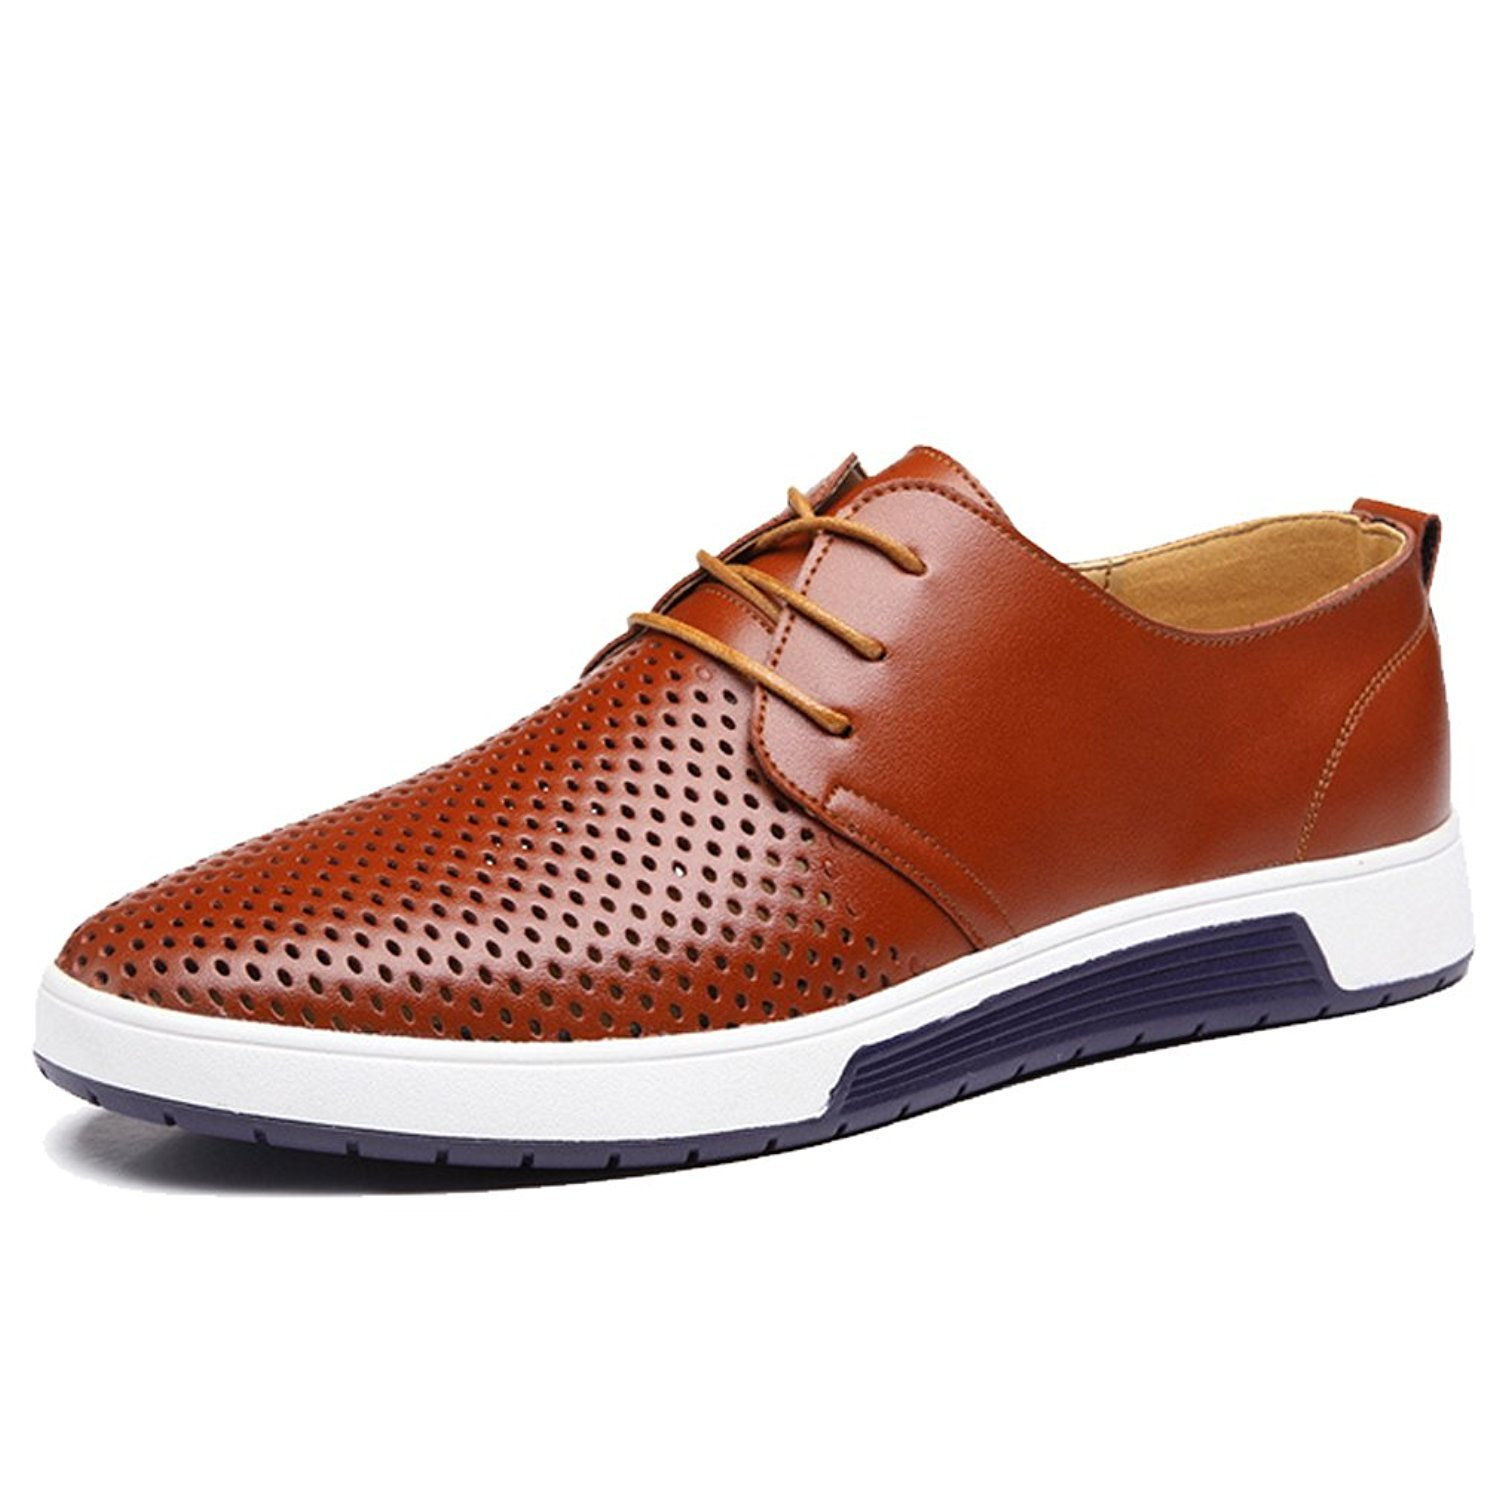 Zzhap Men's Casual Oxford Shoes Breathable Flat Fashion Sneakers Brown US 10.5